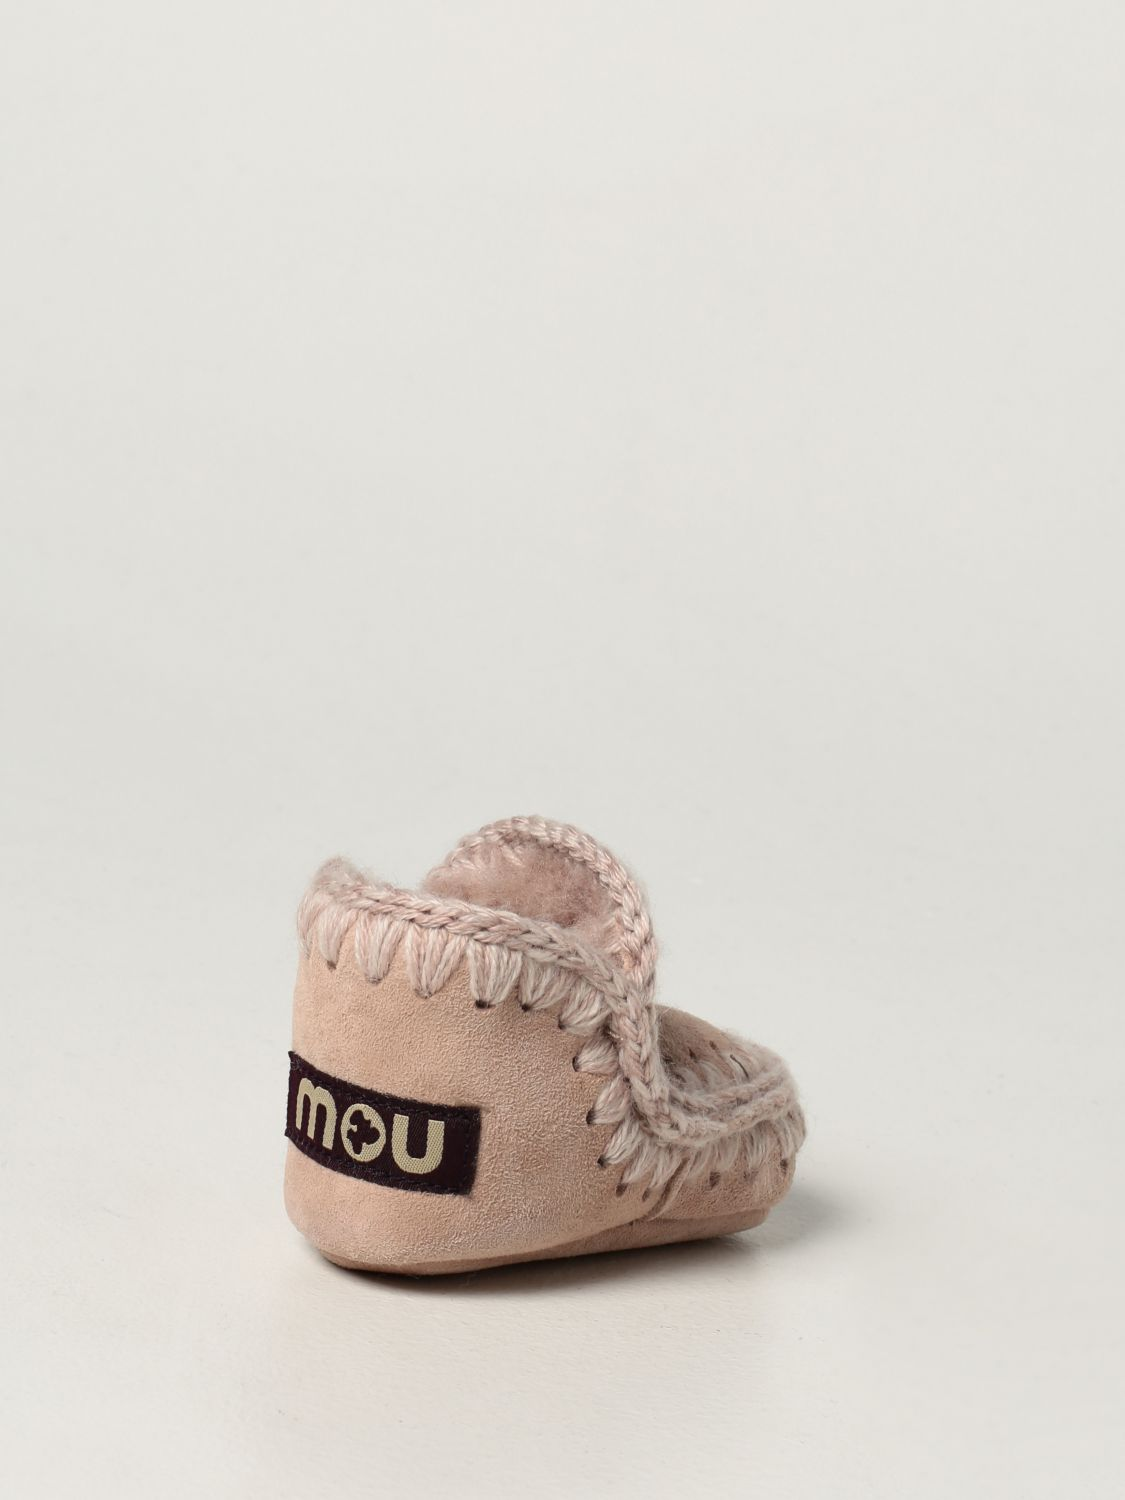 Chaussures Mou: Chaussures enfant Mou beige 3